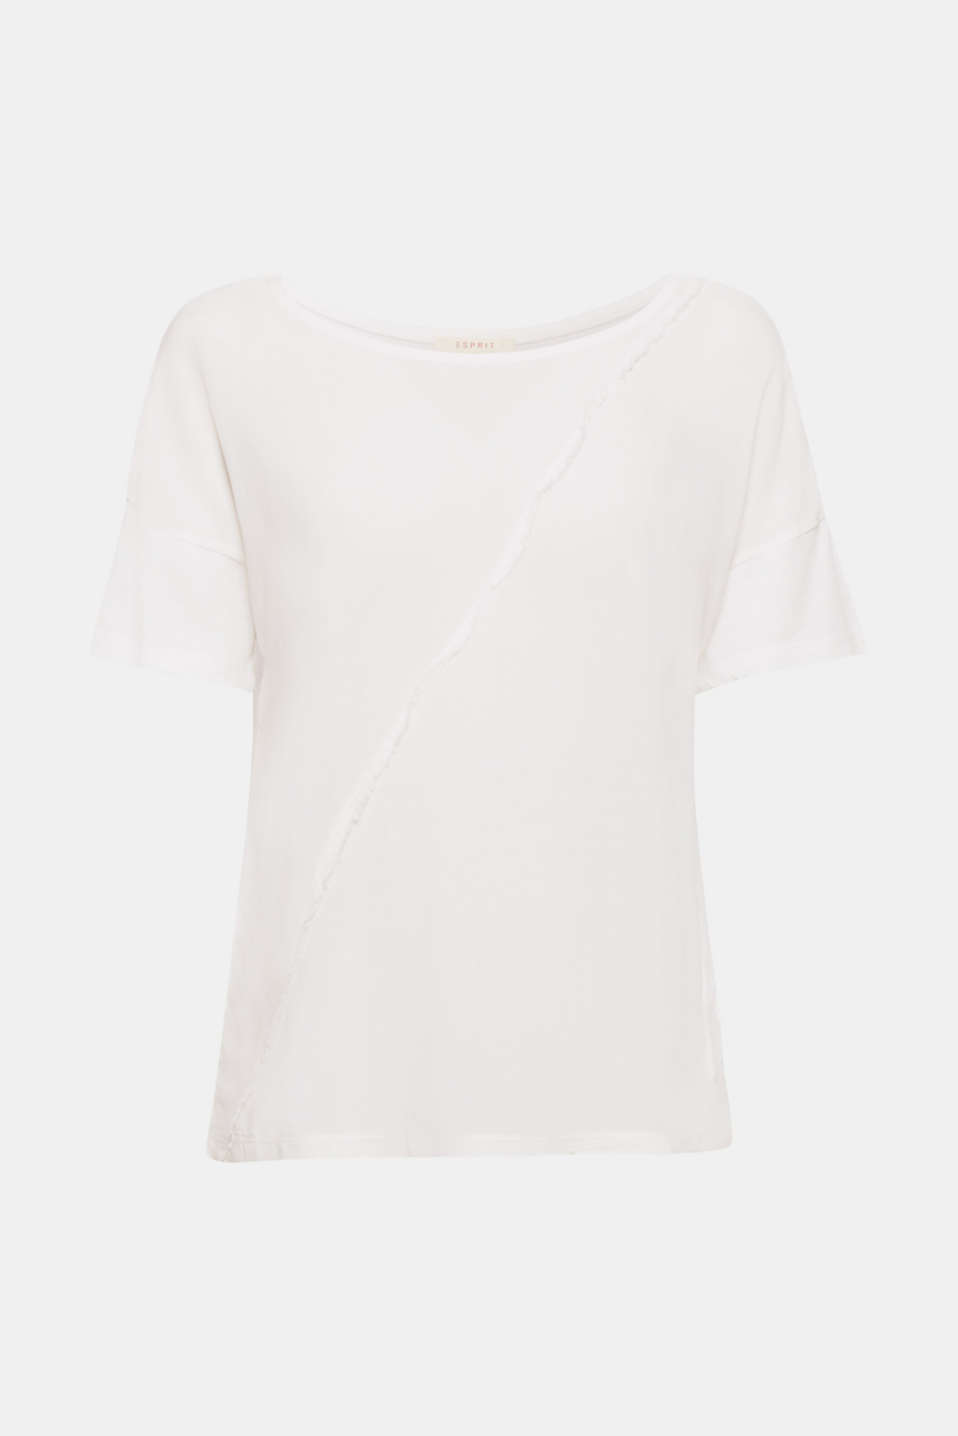 The uneven dye effect and frayed decorative seams give this T-shirt made of a draped material mix a cool, unique look.